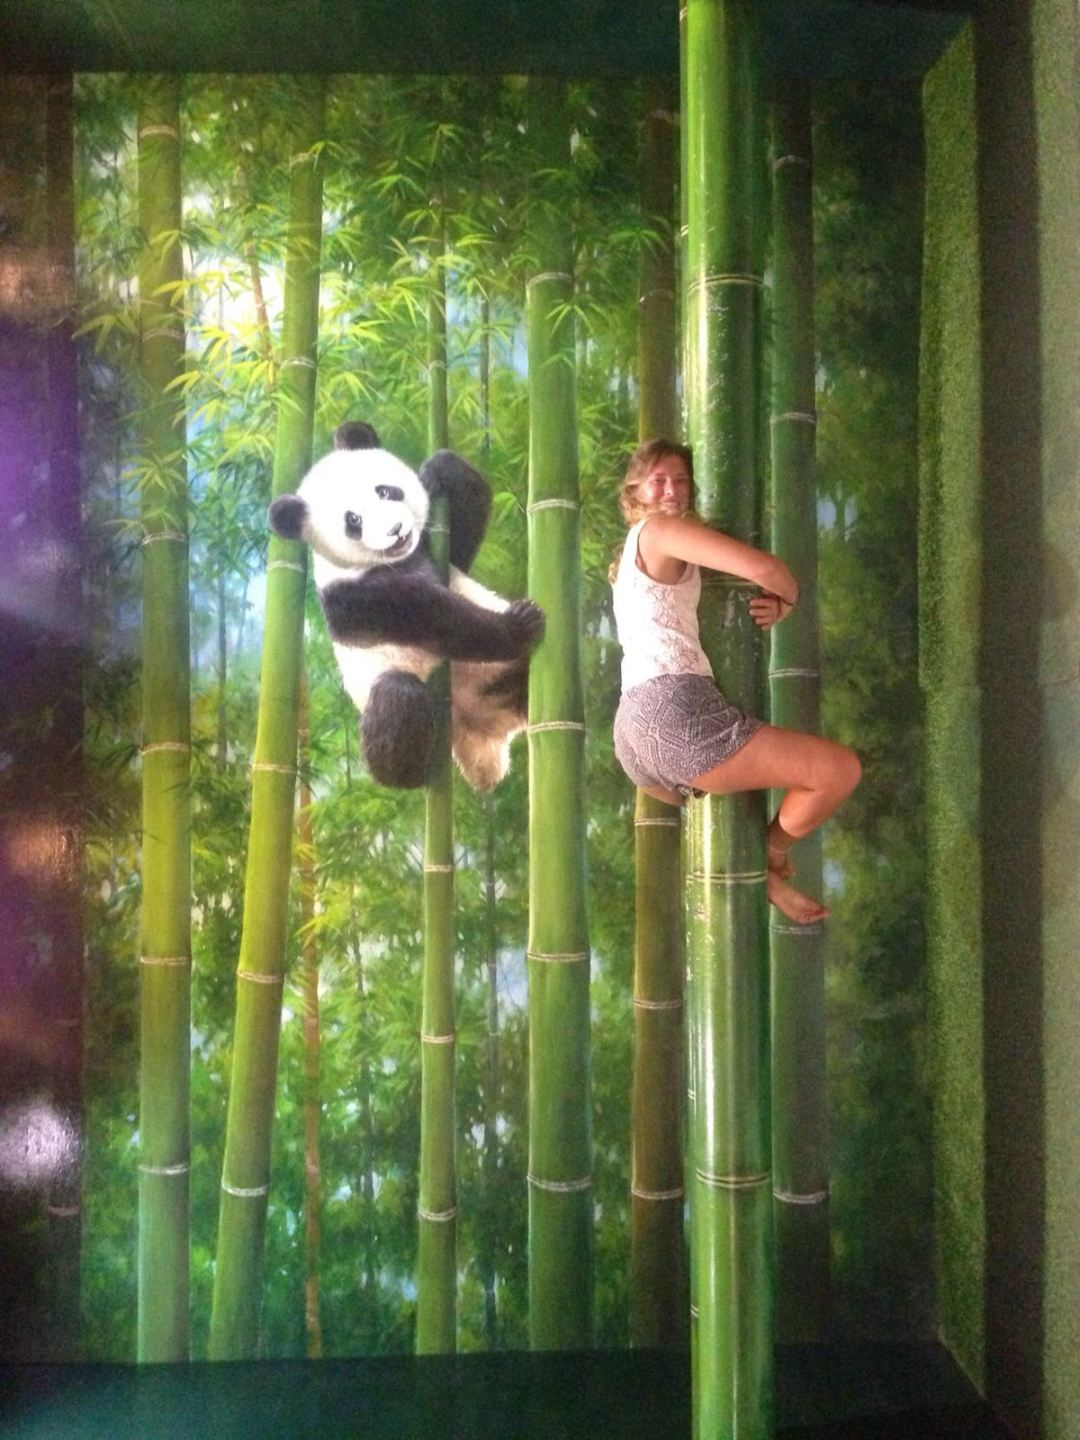 Art piece flipped on its side to pretend girl climbing a bamboo tree